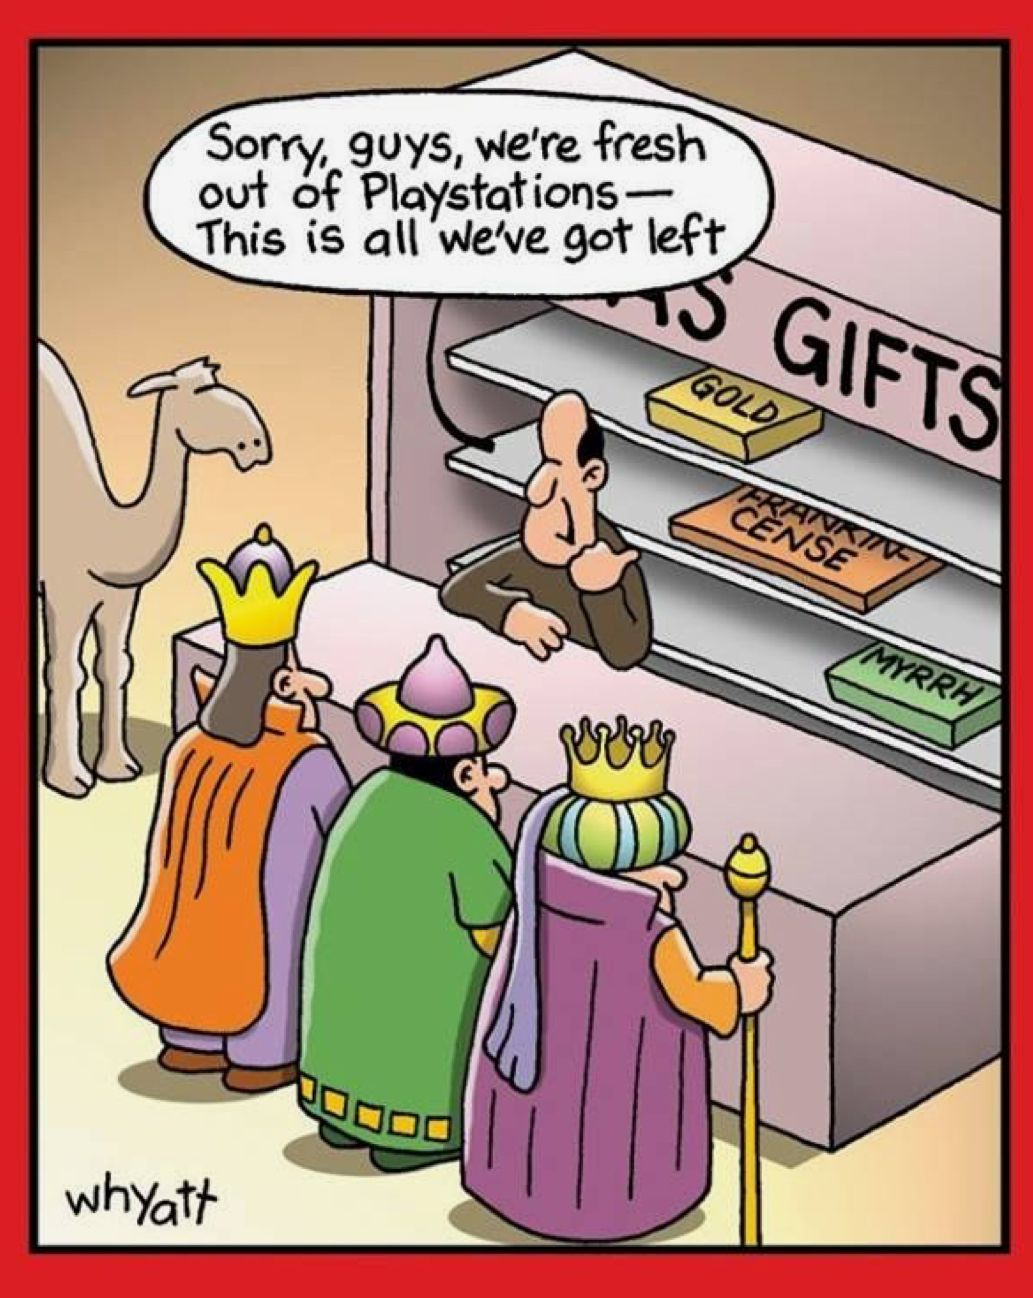 Pin by Becky Palmer on Humor Funny christmas jokes